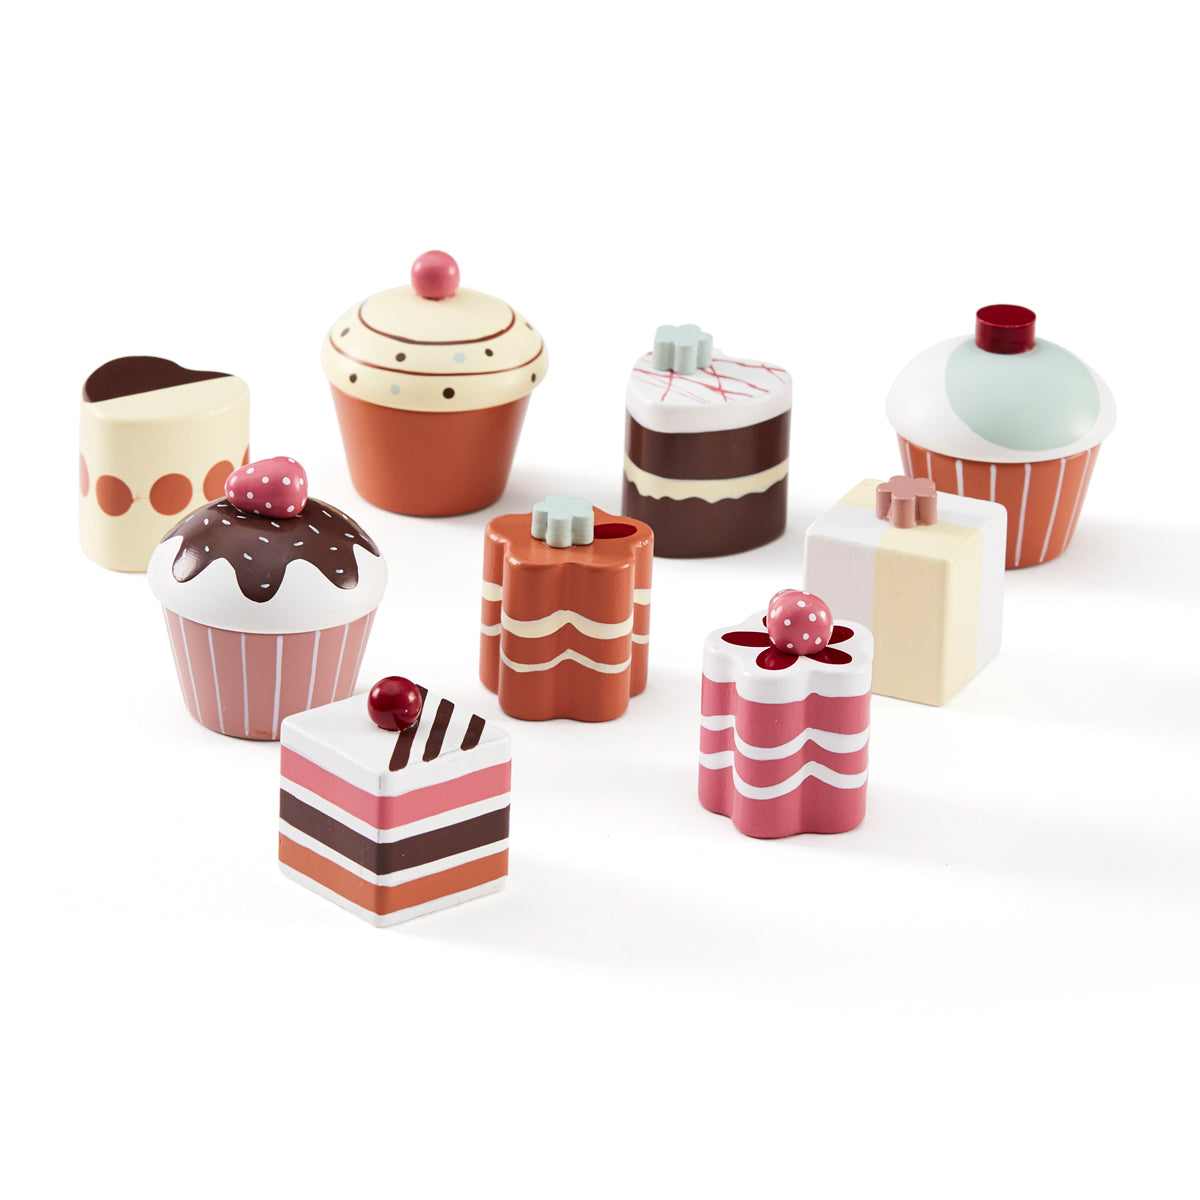 Kids Concept wooden pastries cakes